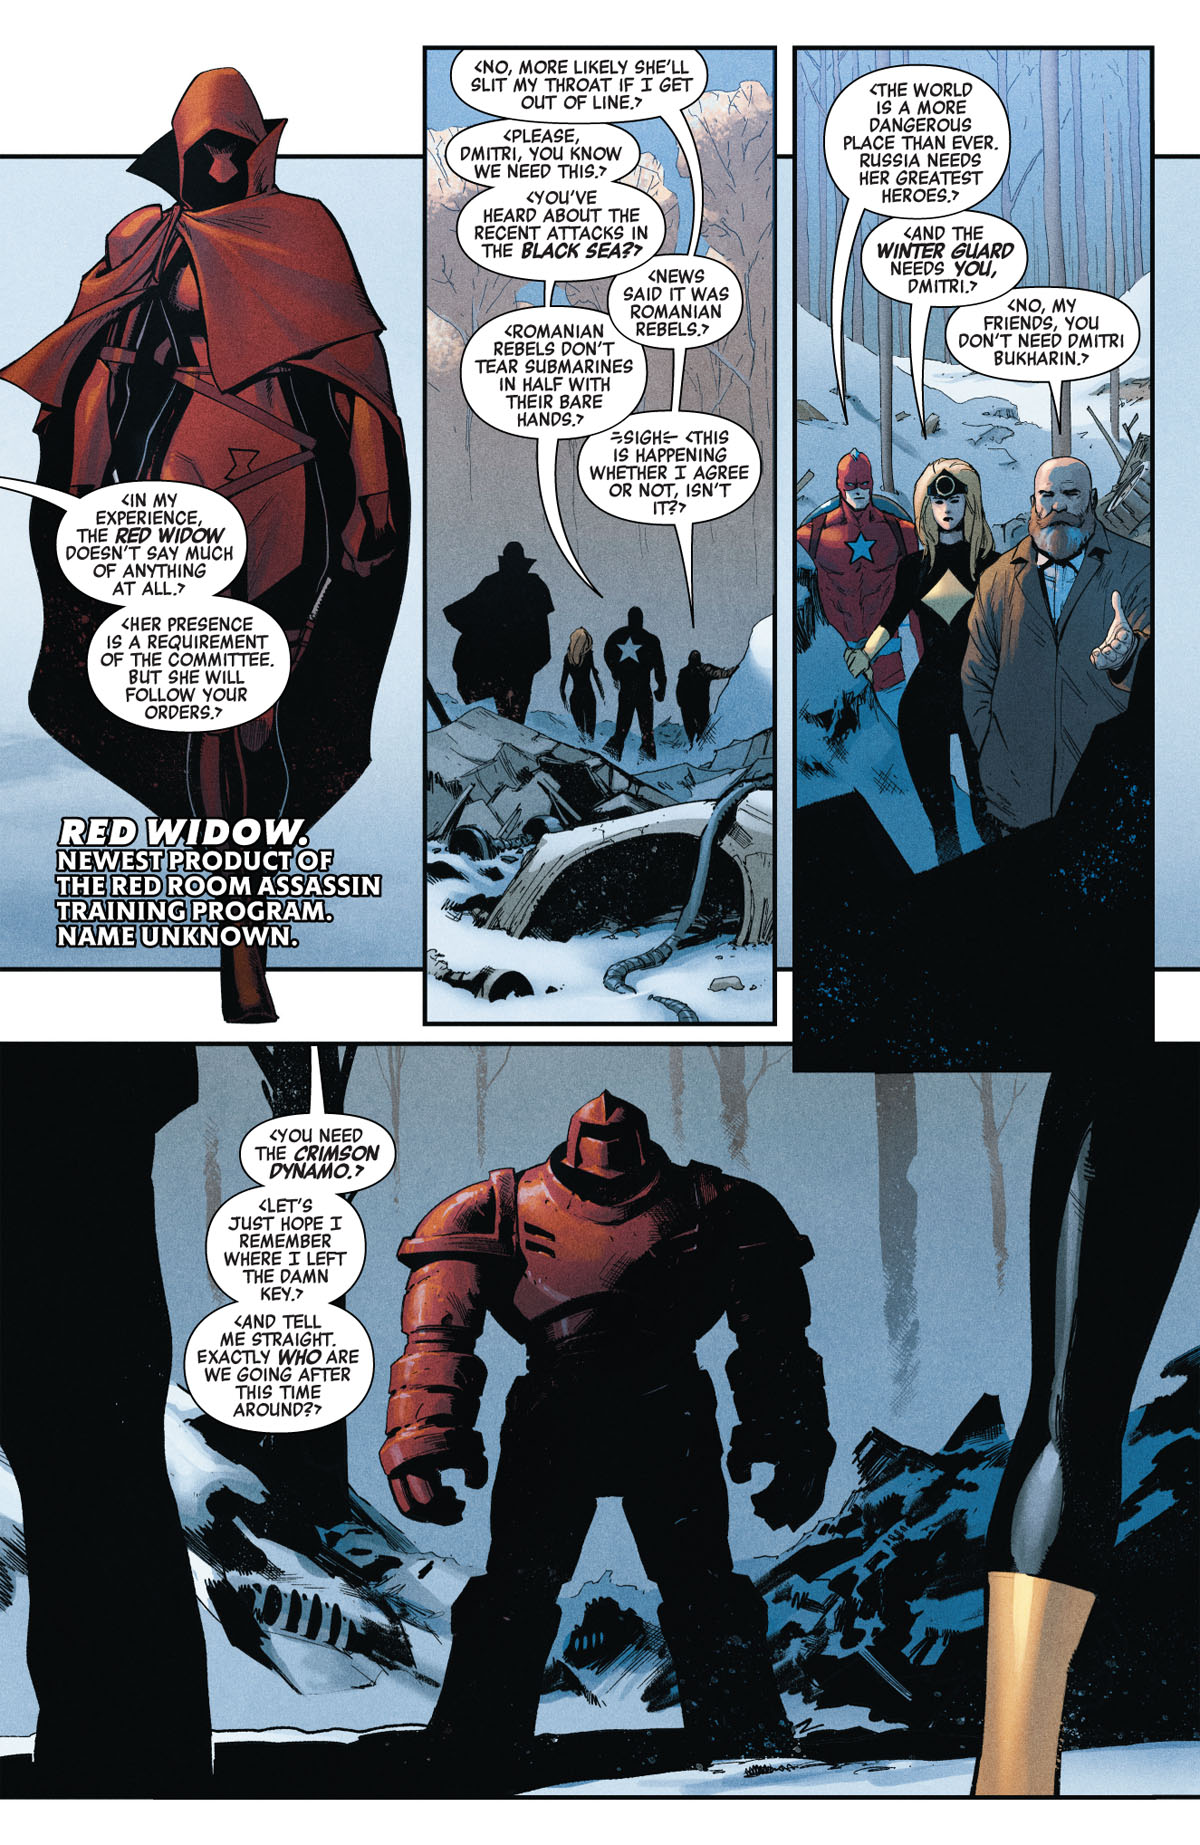 Avengers #10 page 4